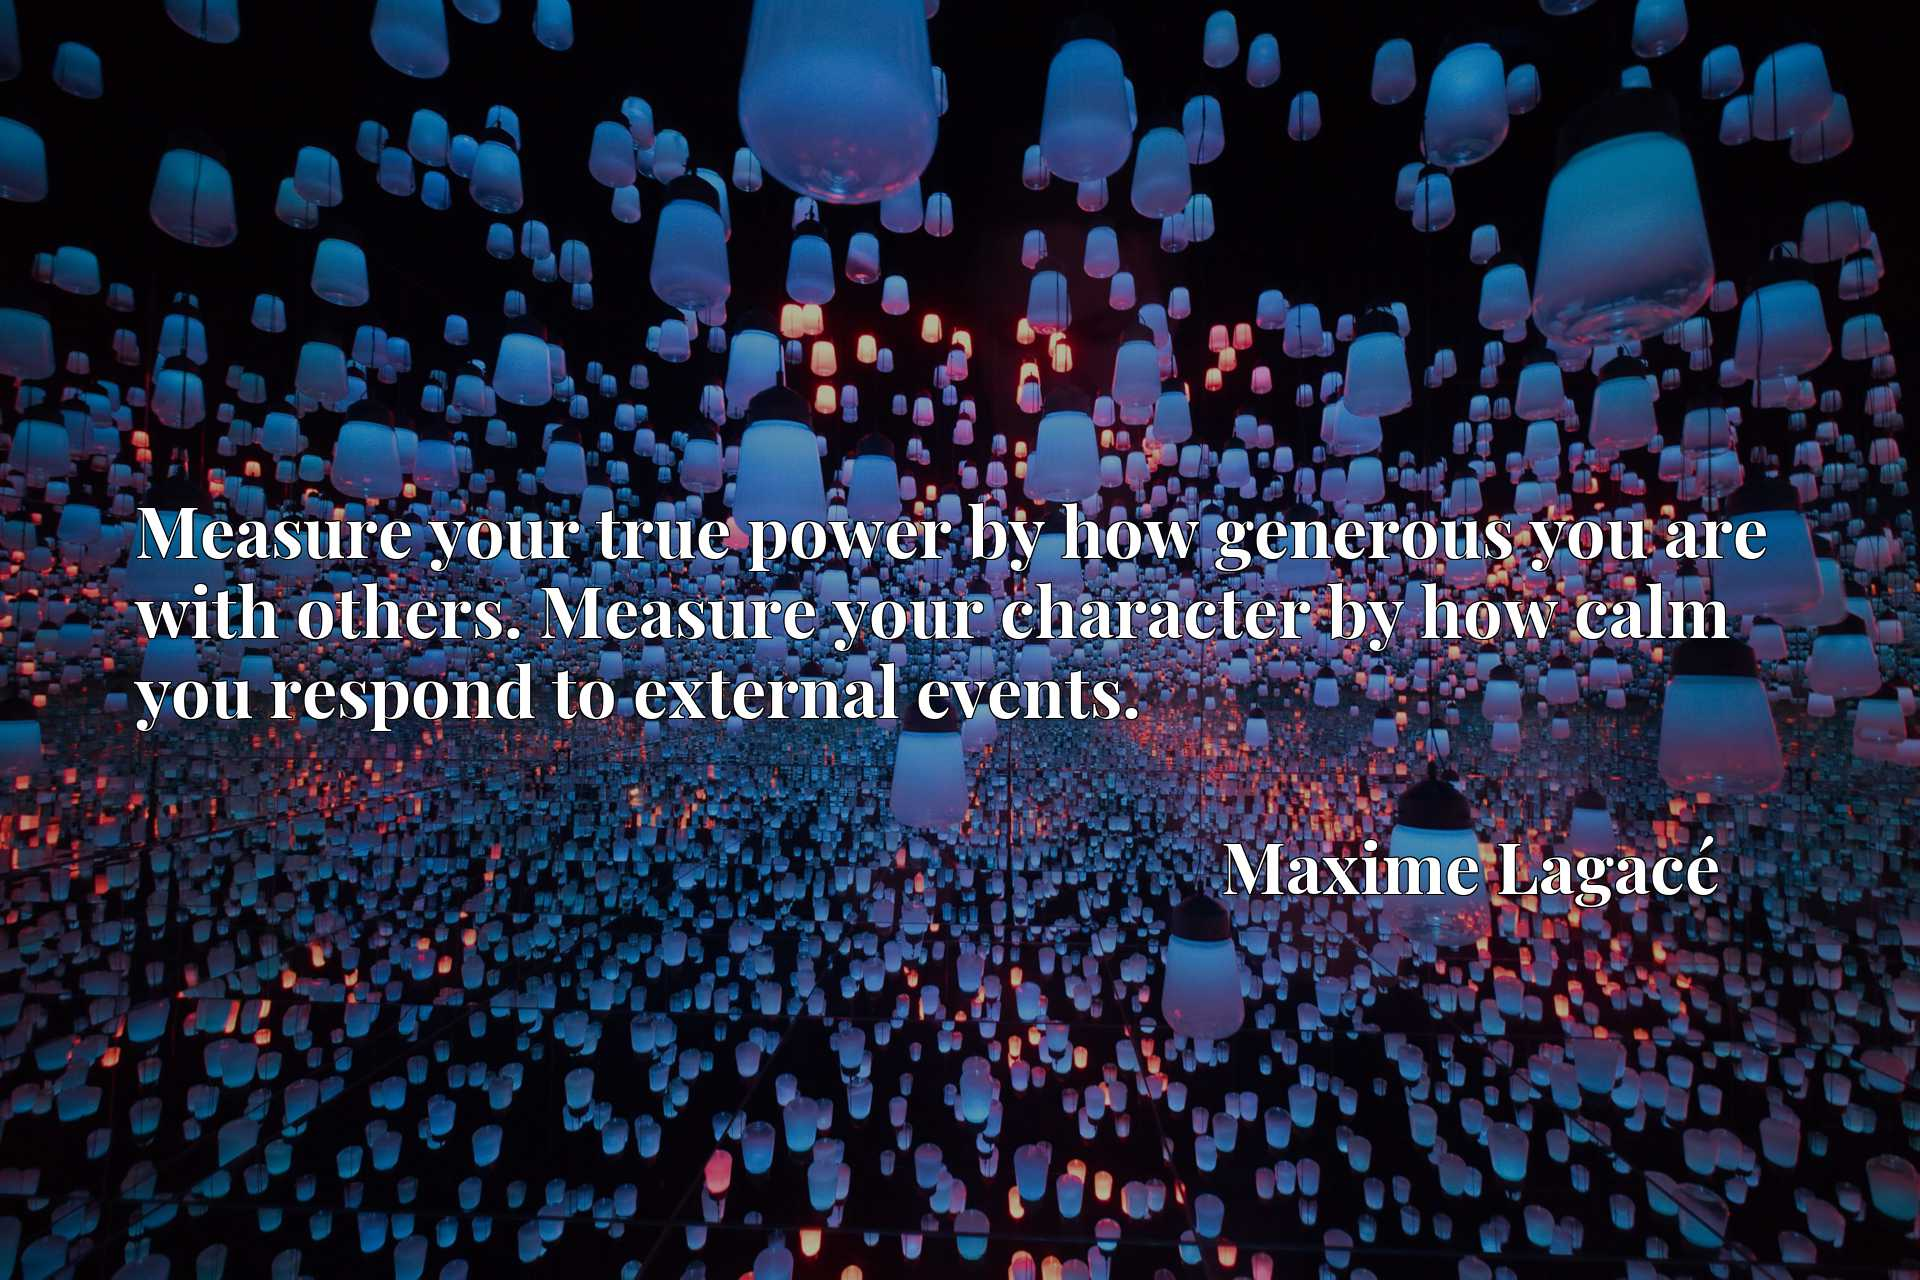 Measure your true power by how generous you are with others. Measure your character by how calm you respond to external events.